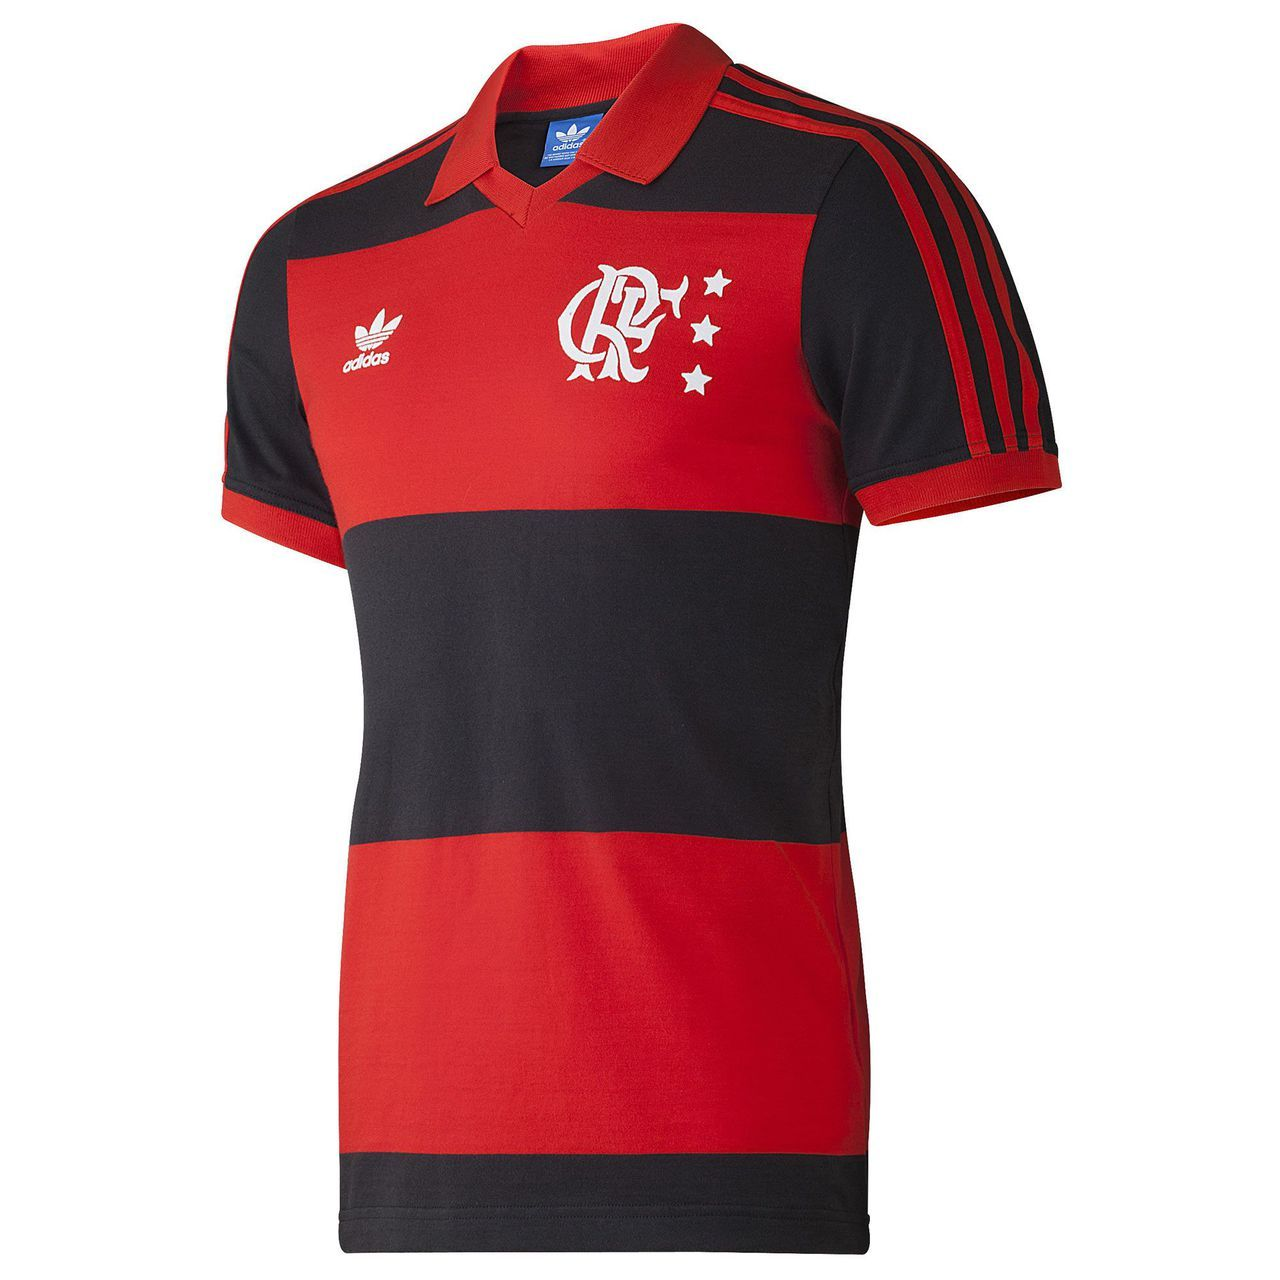 Adidas Flamengo 80s Retro Football Shirt - Red   Black  a2d02699a5783